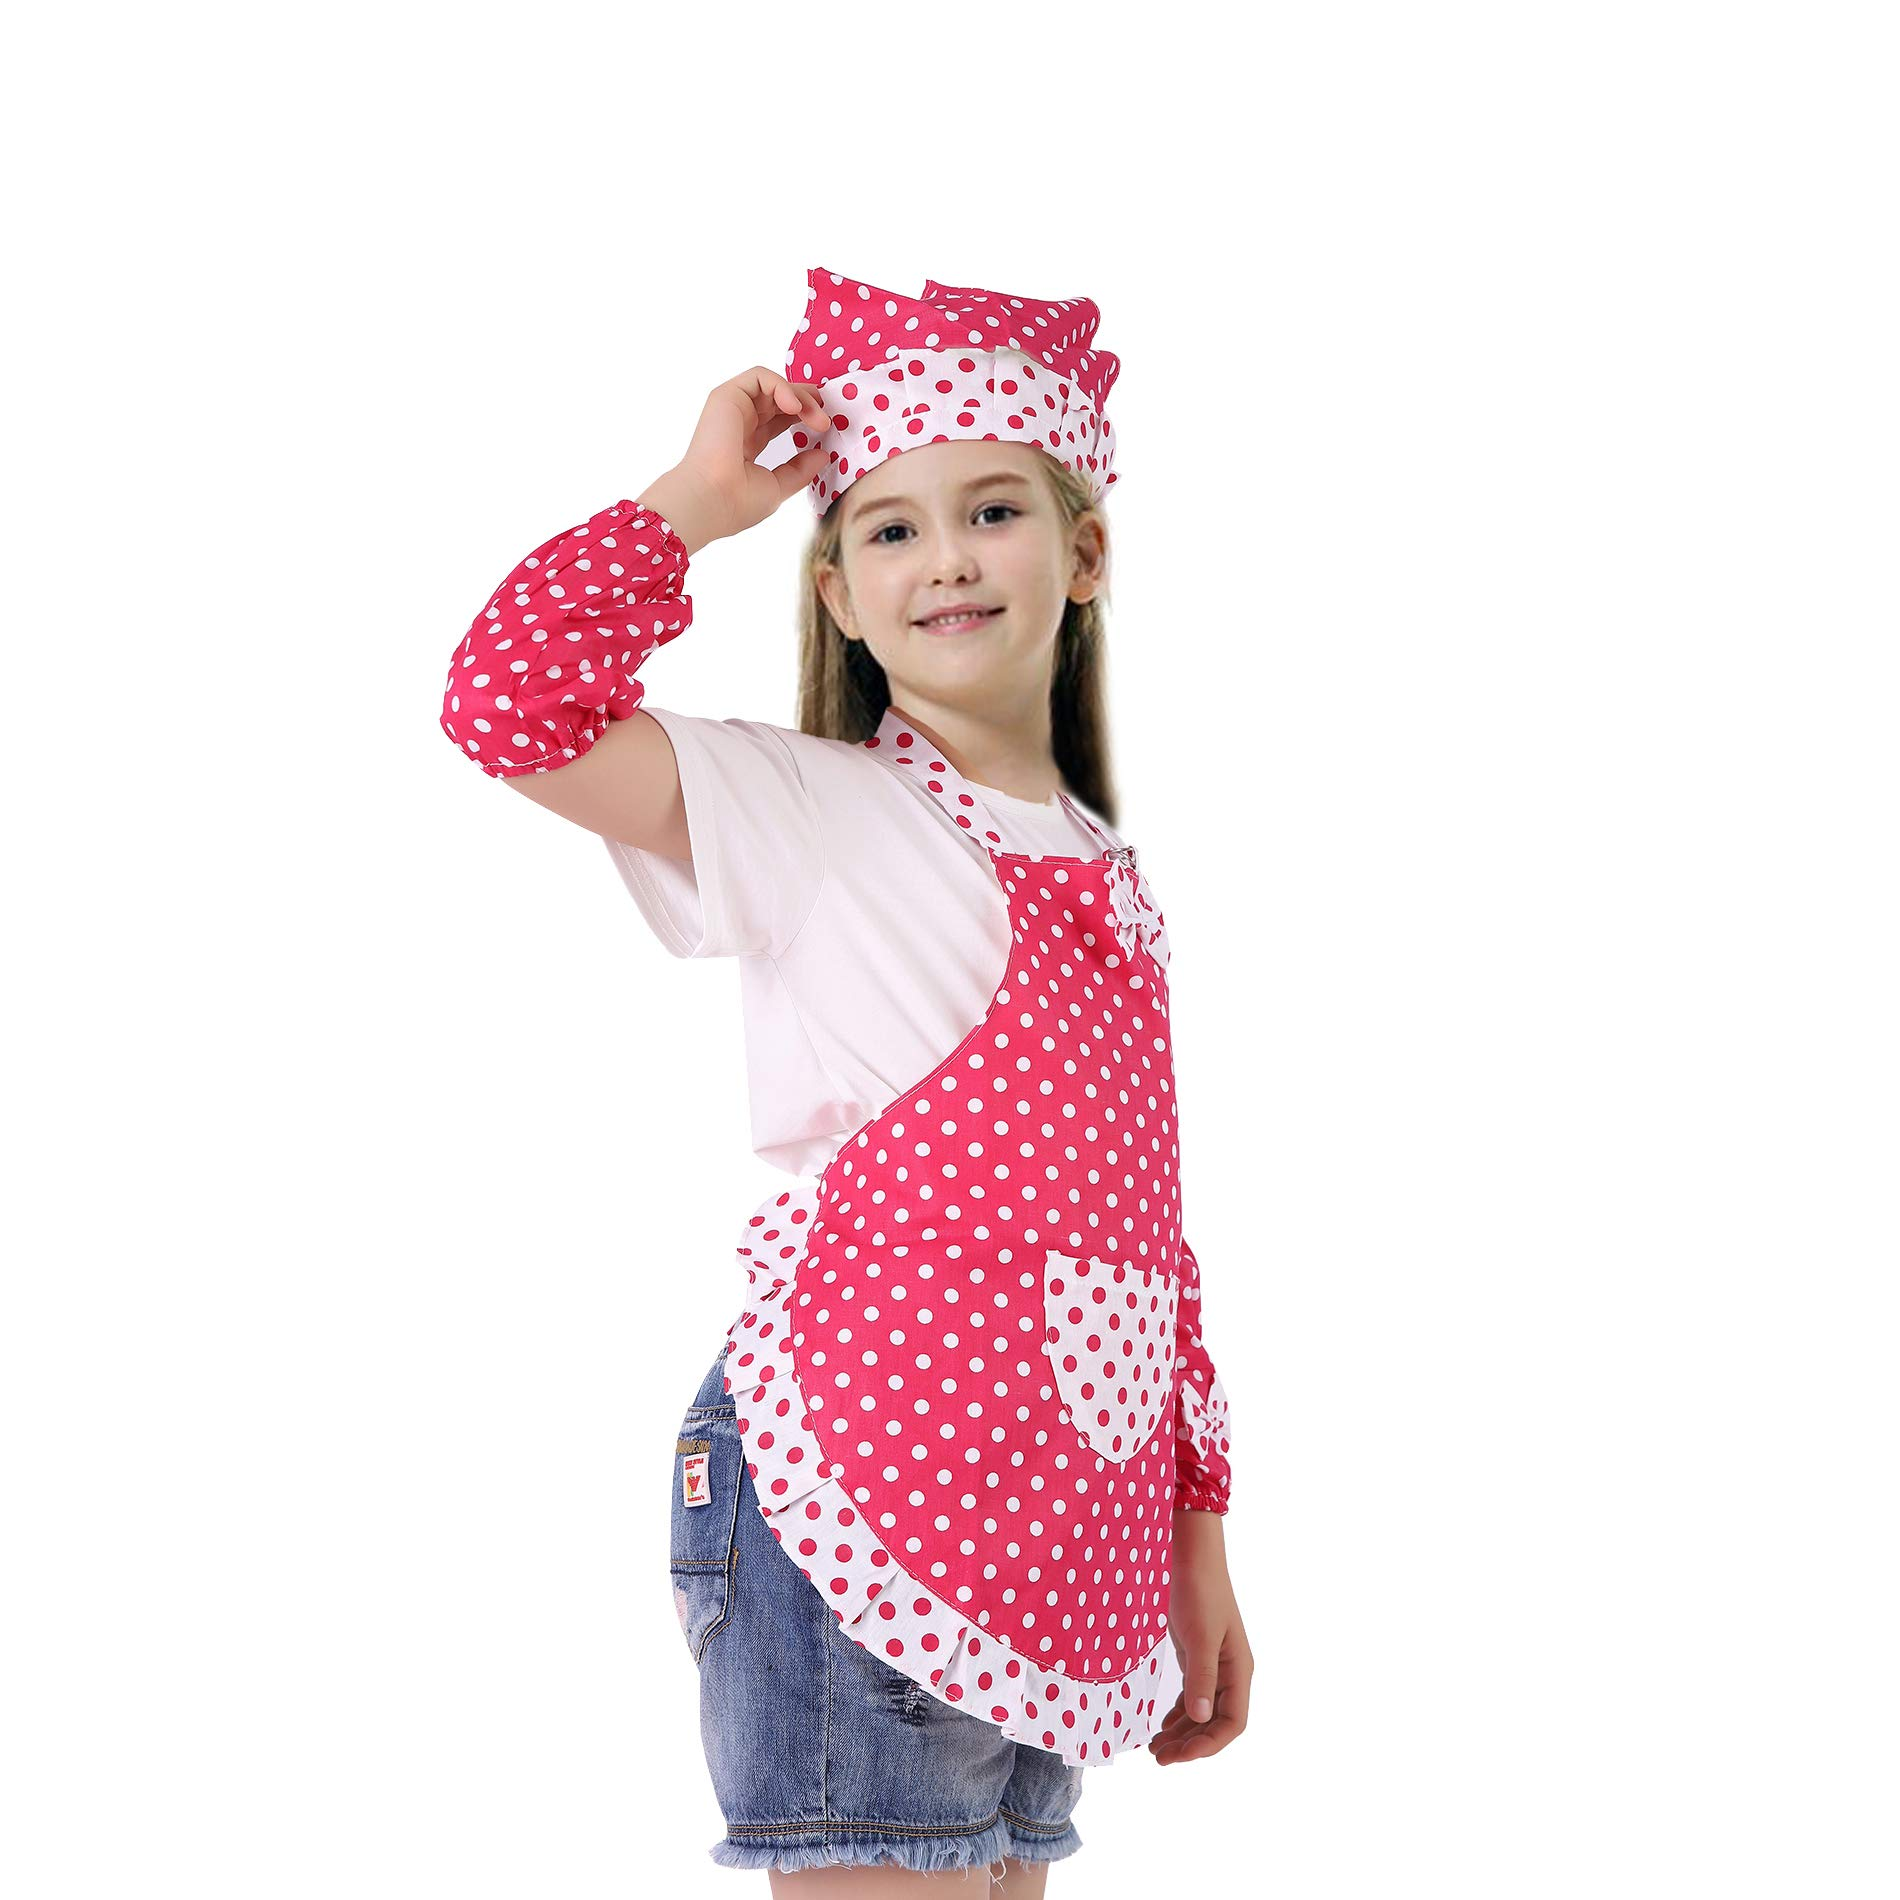 Kids Cooking and Baking Set - 3 Piece Kids\' Cooking Kits Includes Apron, Sleevelet, Headkerchief For 2 to 6 Year Old Girls or Boys (Red)